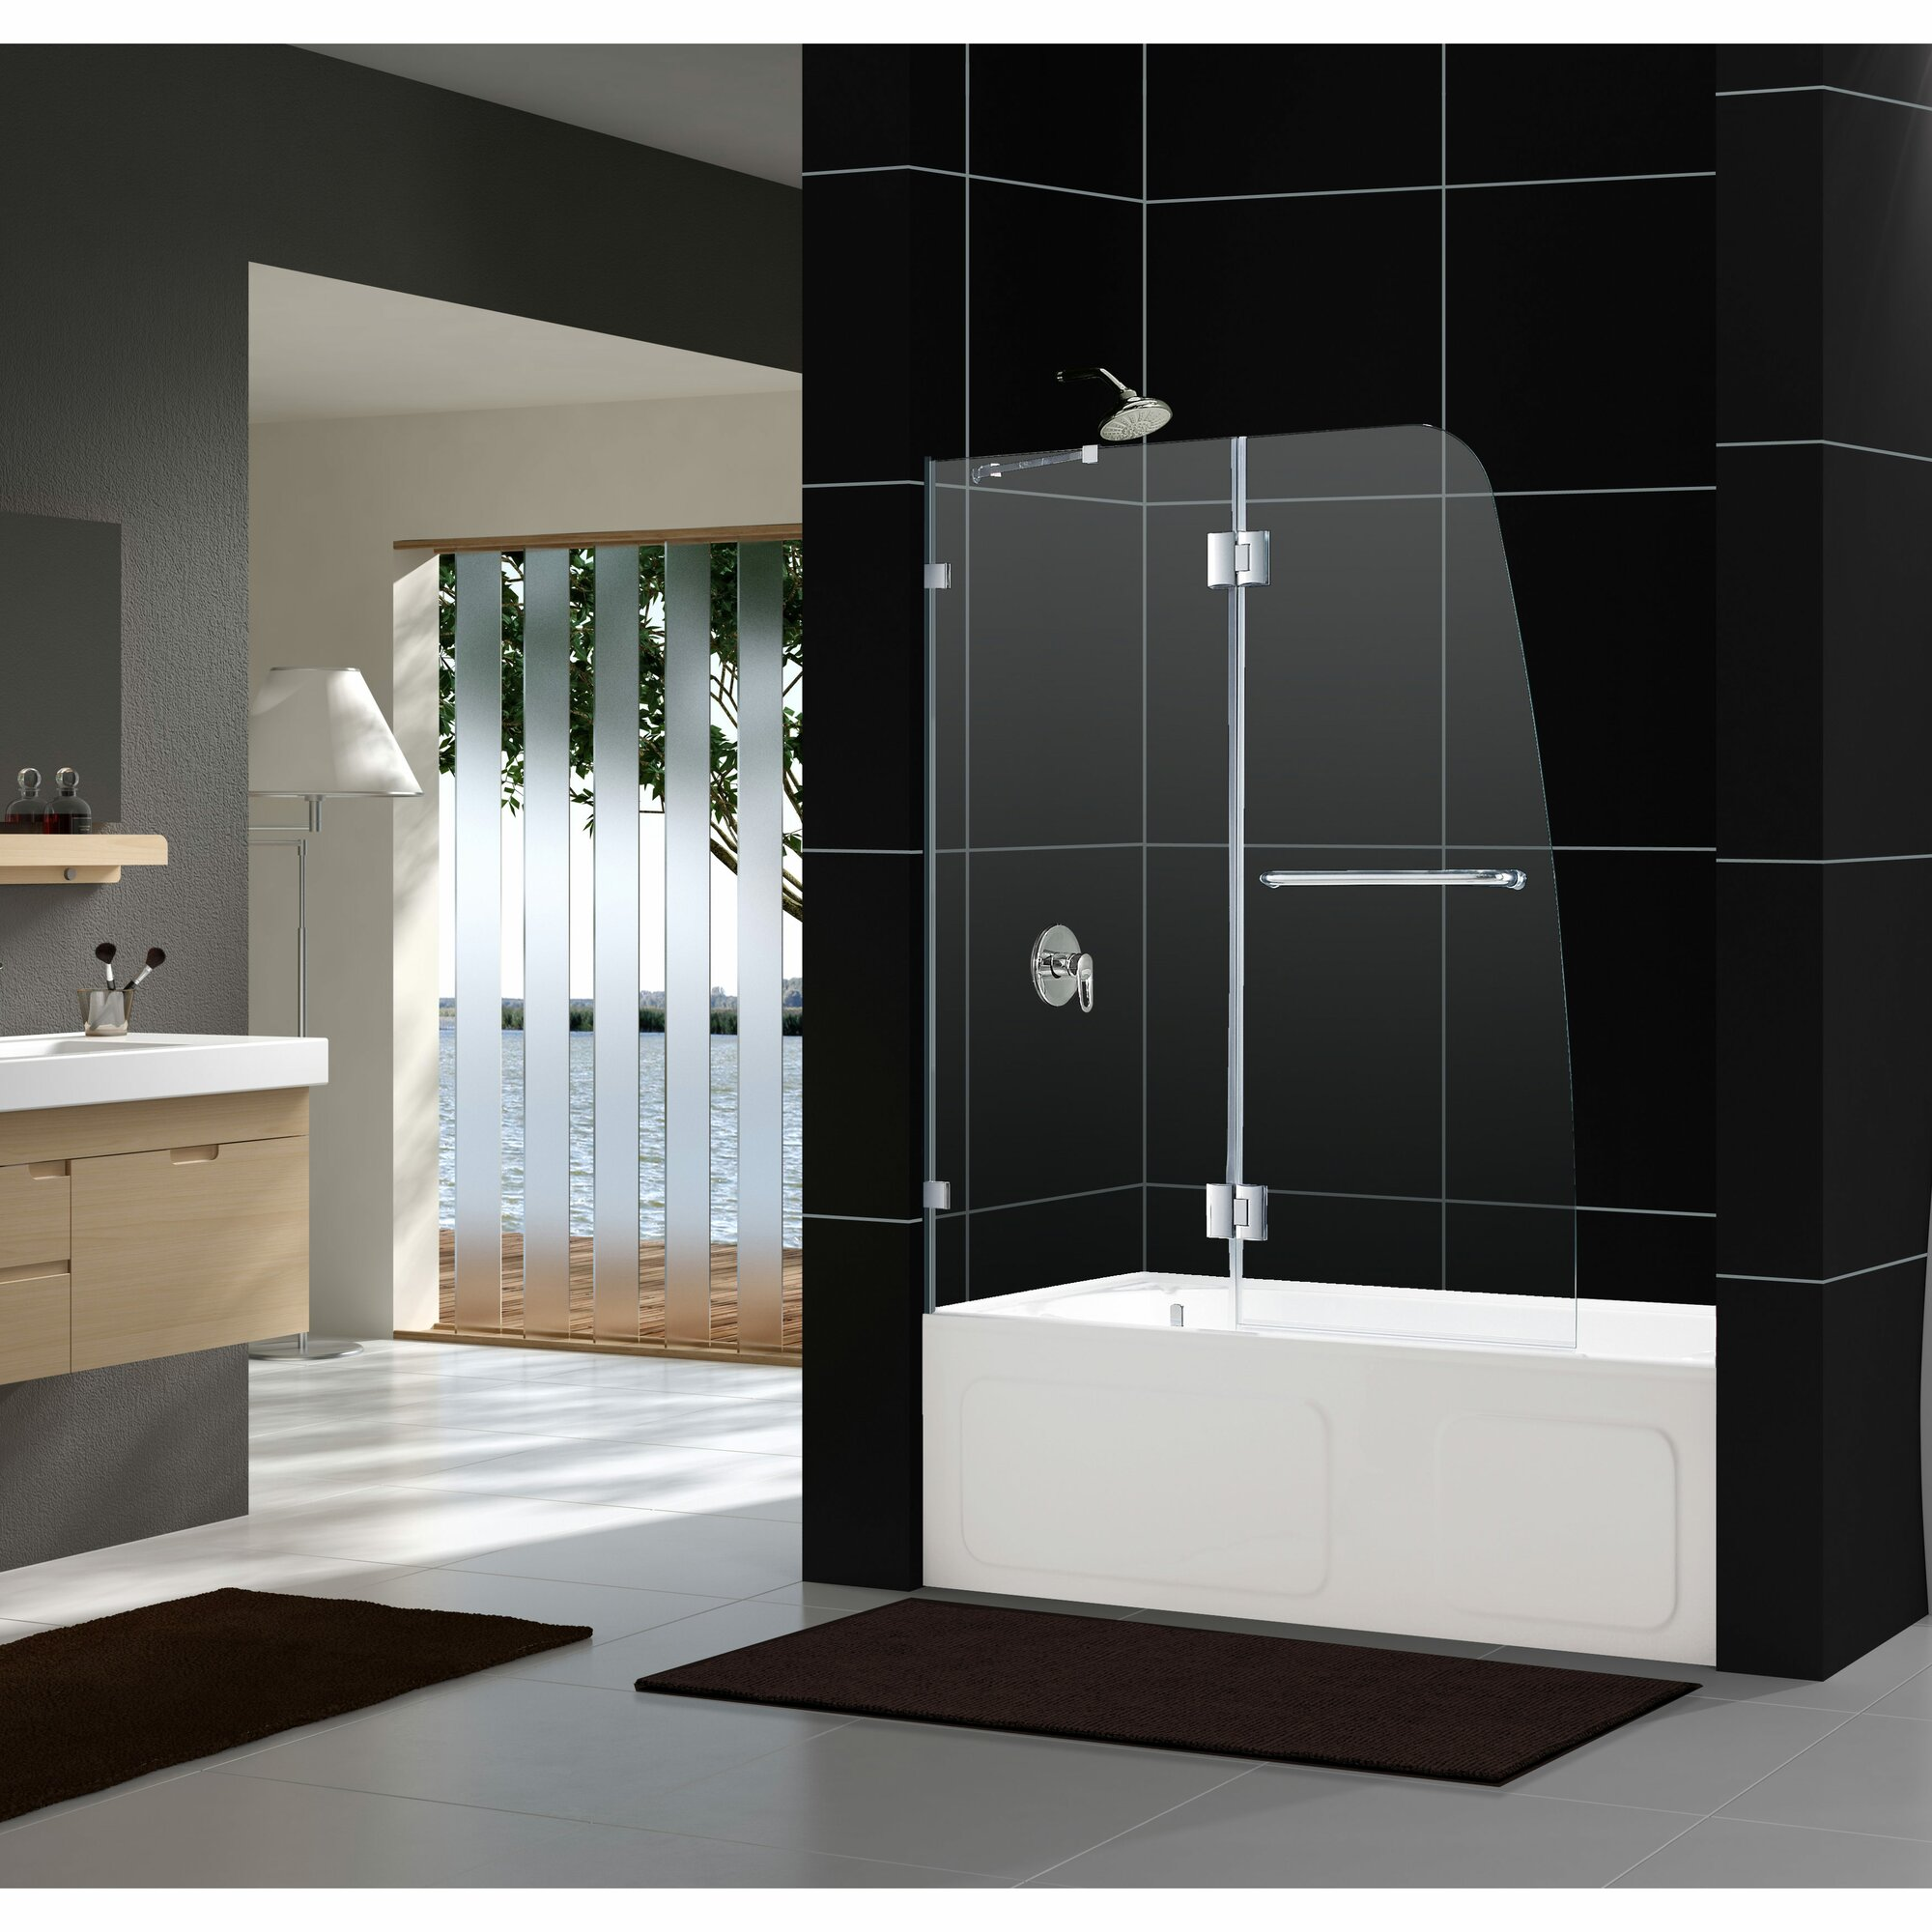 Merlyn 8 series sliding door amp inline panel - Aqua Lux 48 Image Number 42 Of Showerlux Sliding Doors